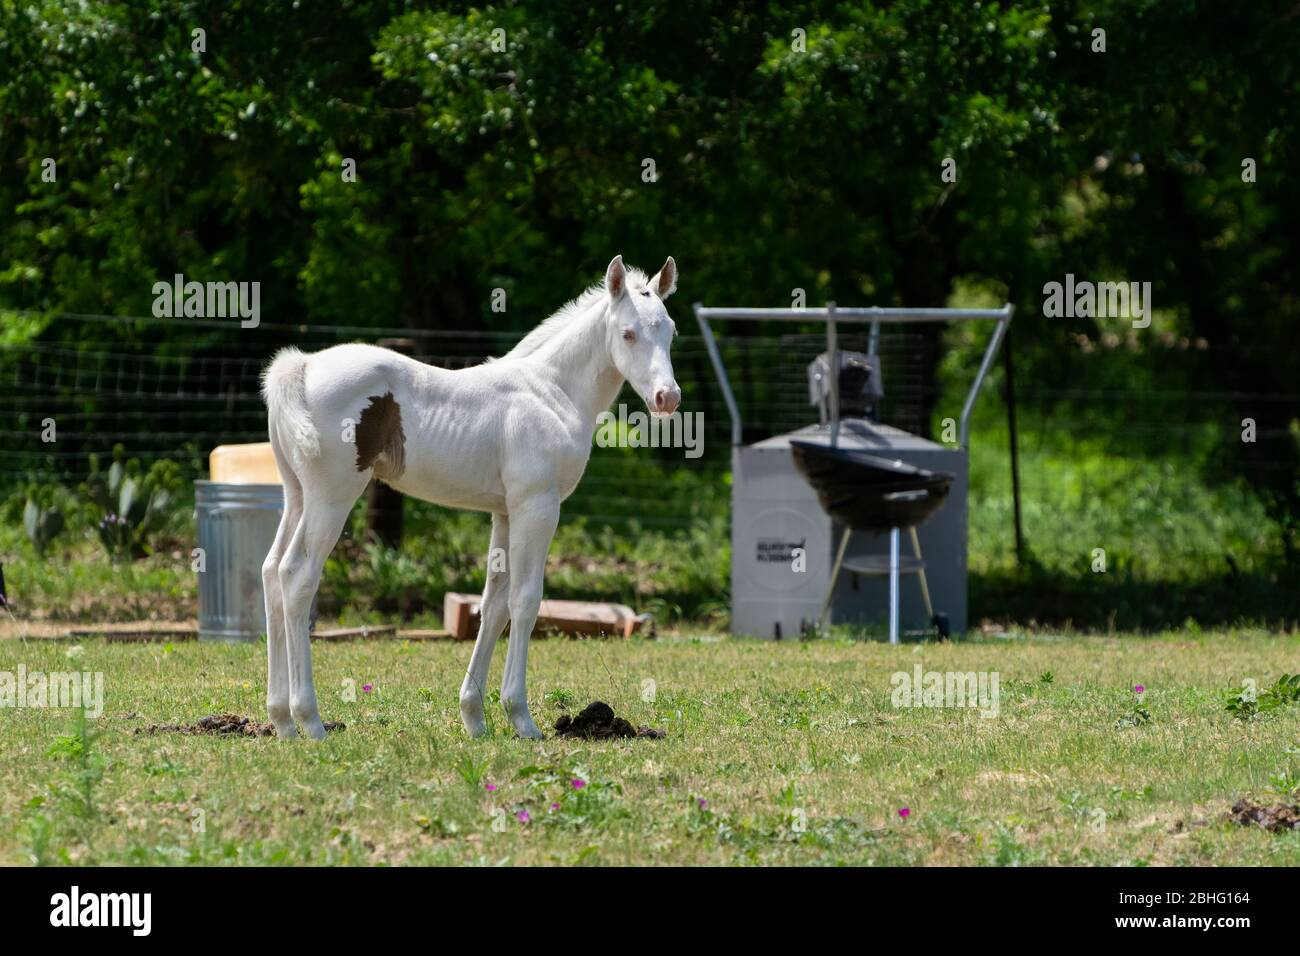 Beautiful Snow White Albino Baby Horse Standing In A Ranch Pasture With Some Trees A Grill A Trash Can And Other Junk In The Background Stock Photo Alamy